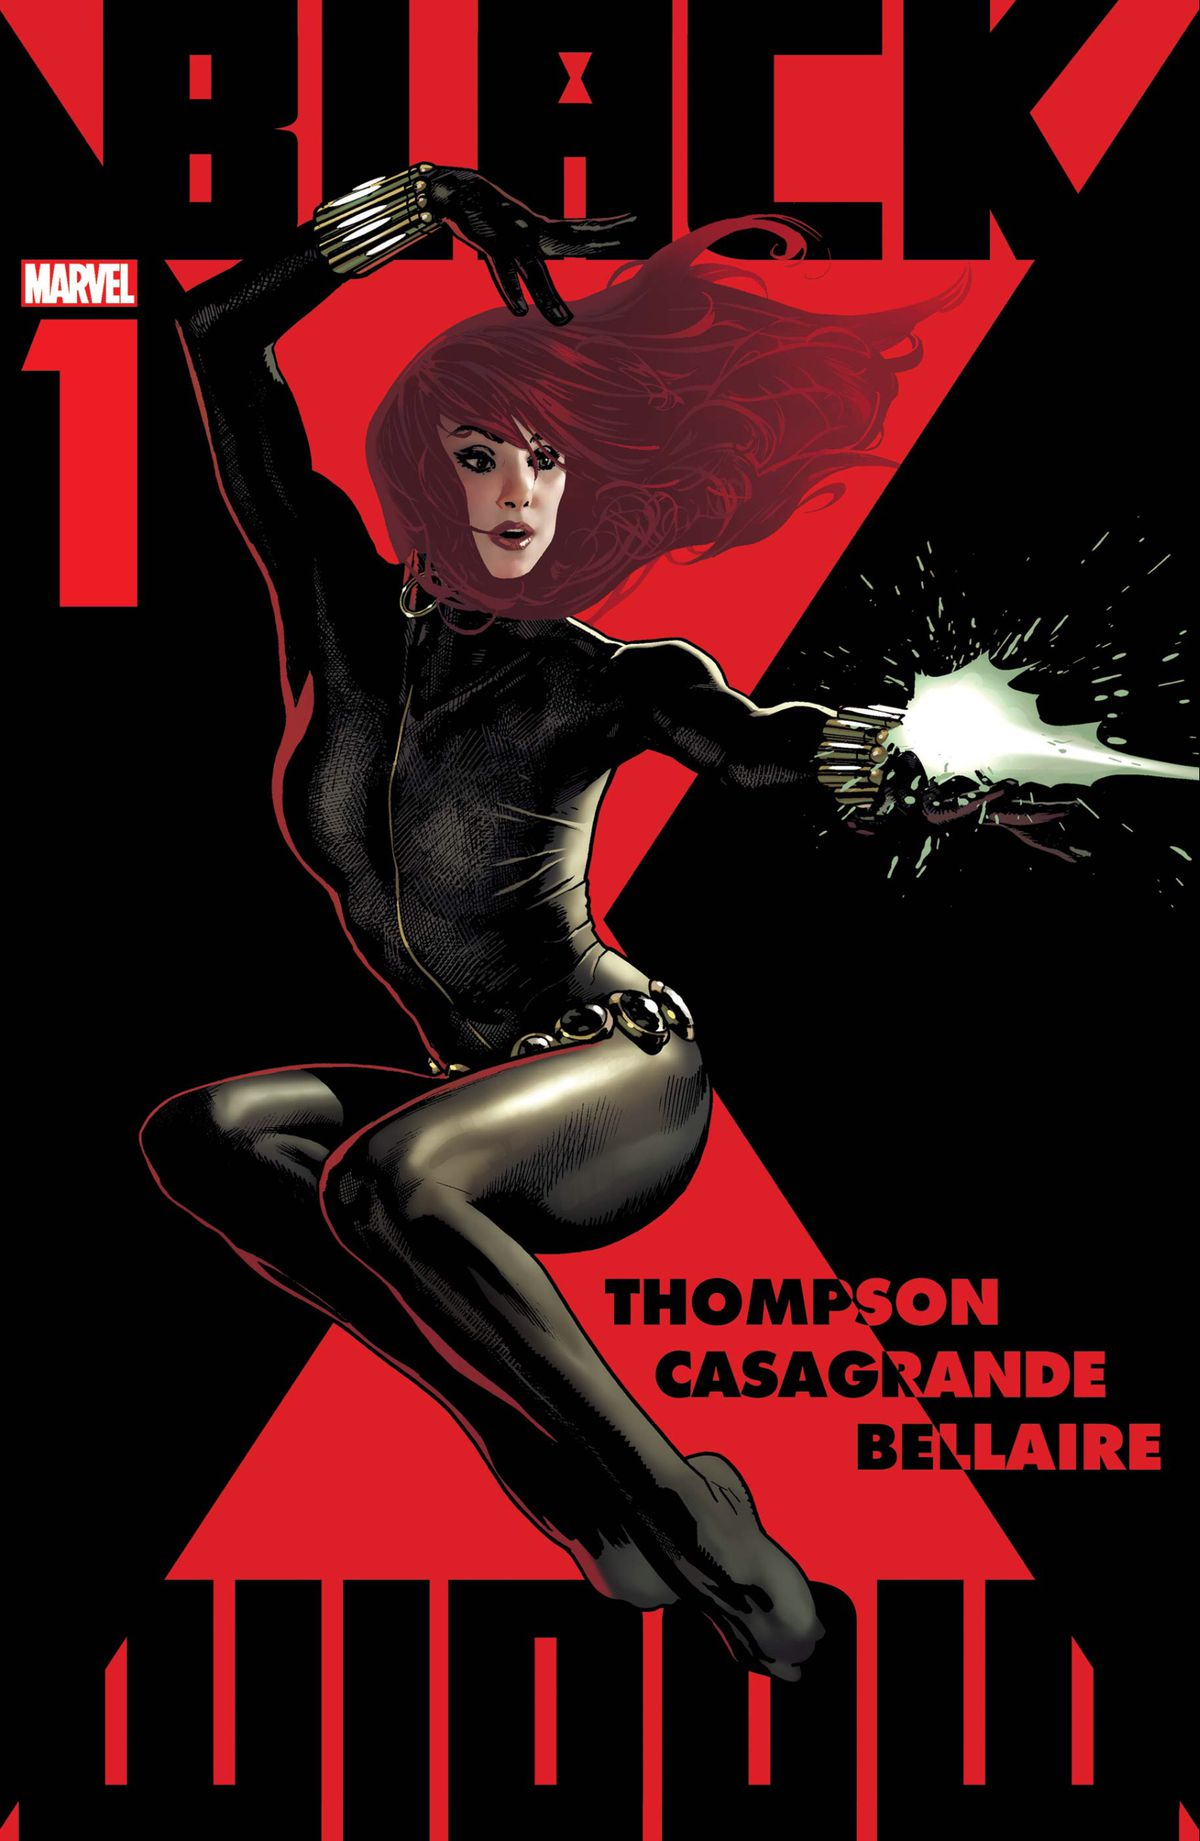 Black Widow leaps through the air firing her wrist blaster on a red hourglass background on the cover of Black Widow #1 (2020).